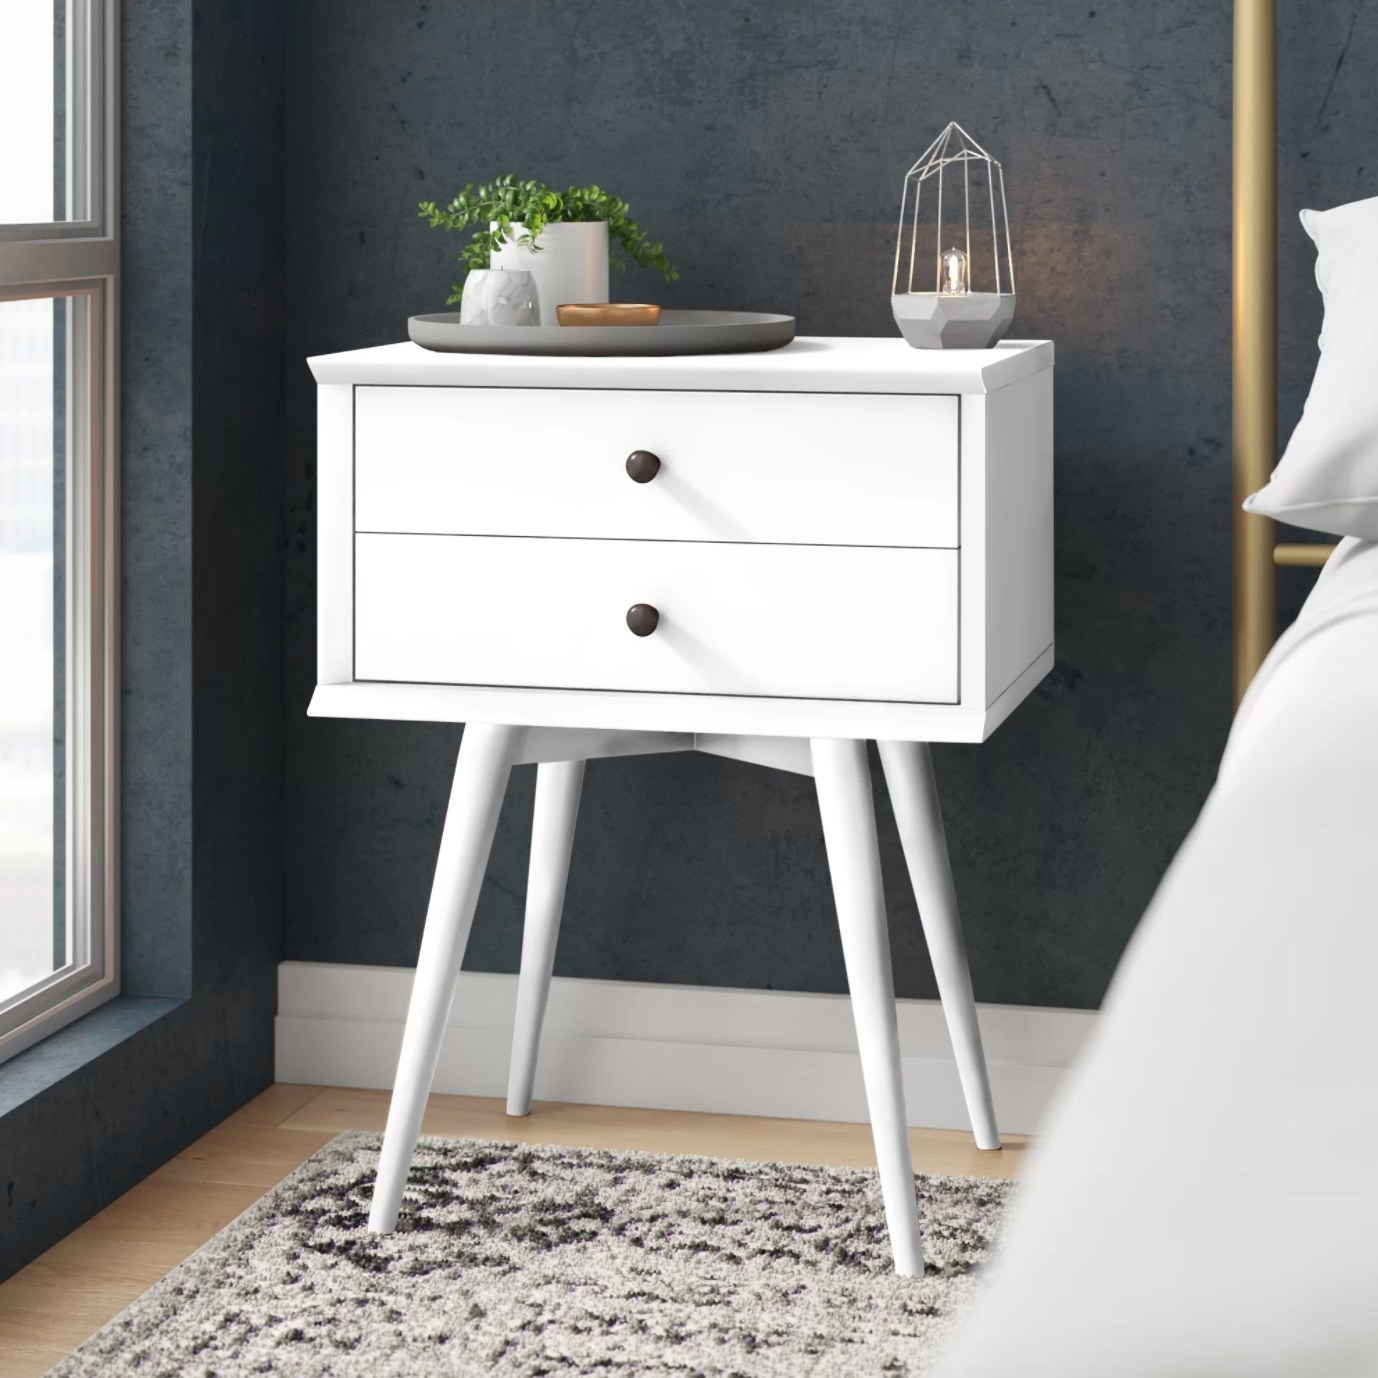 The two drawer nightstand in white